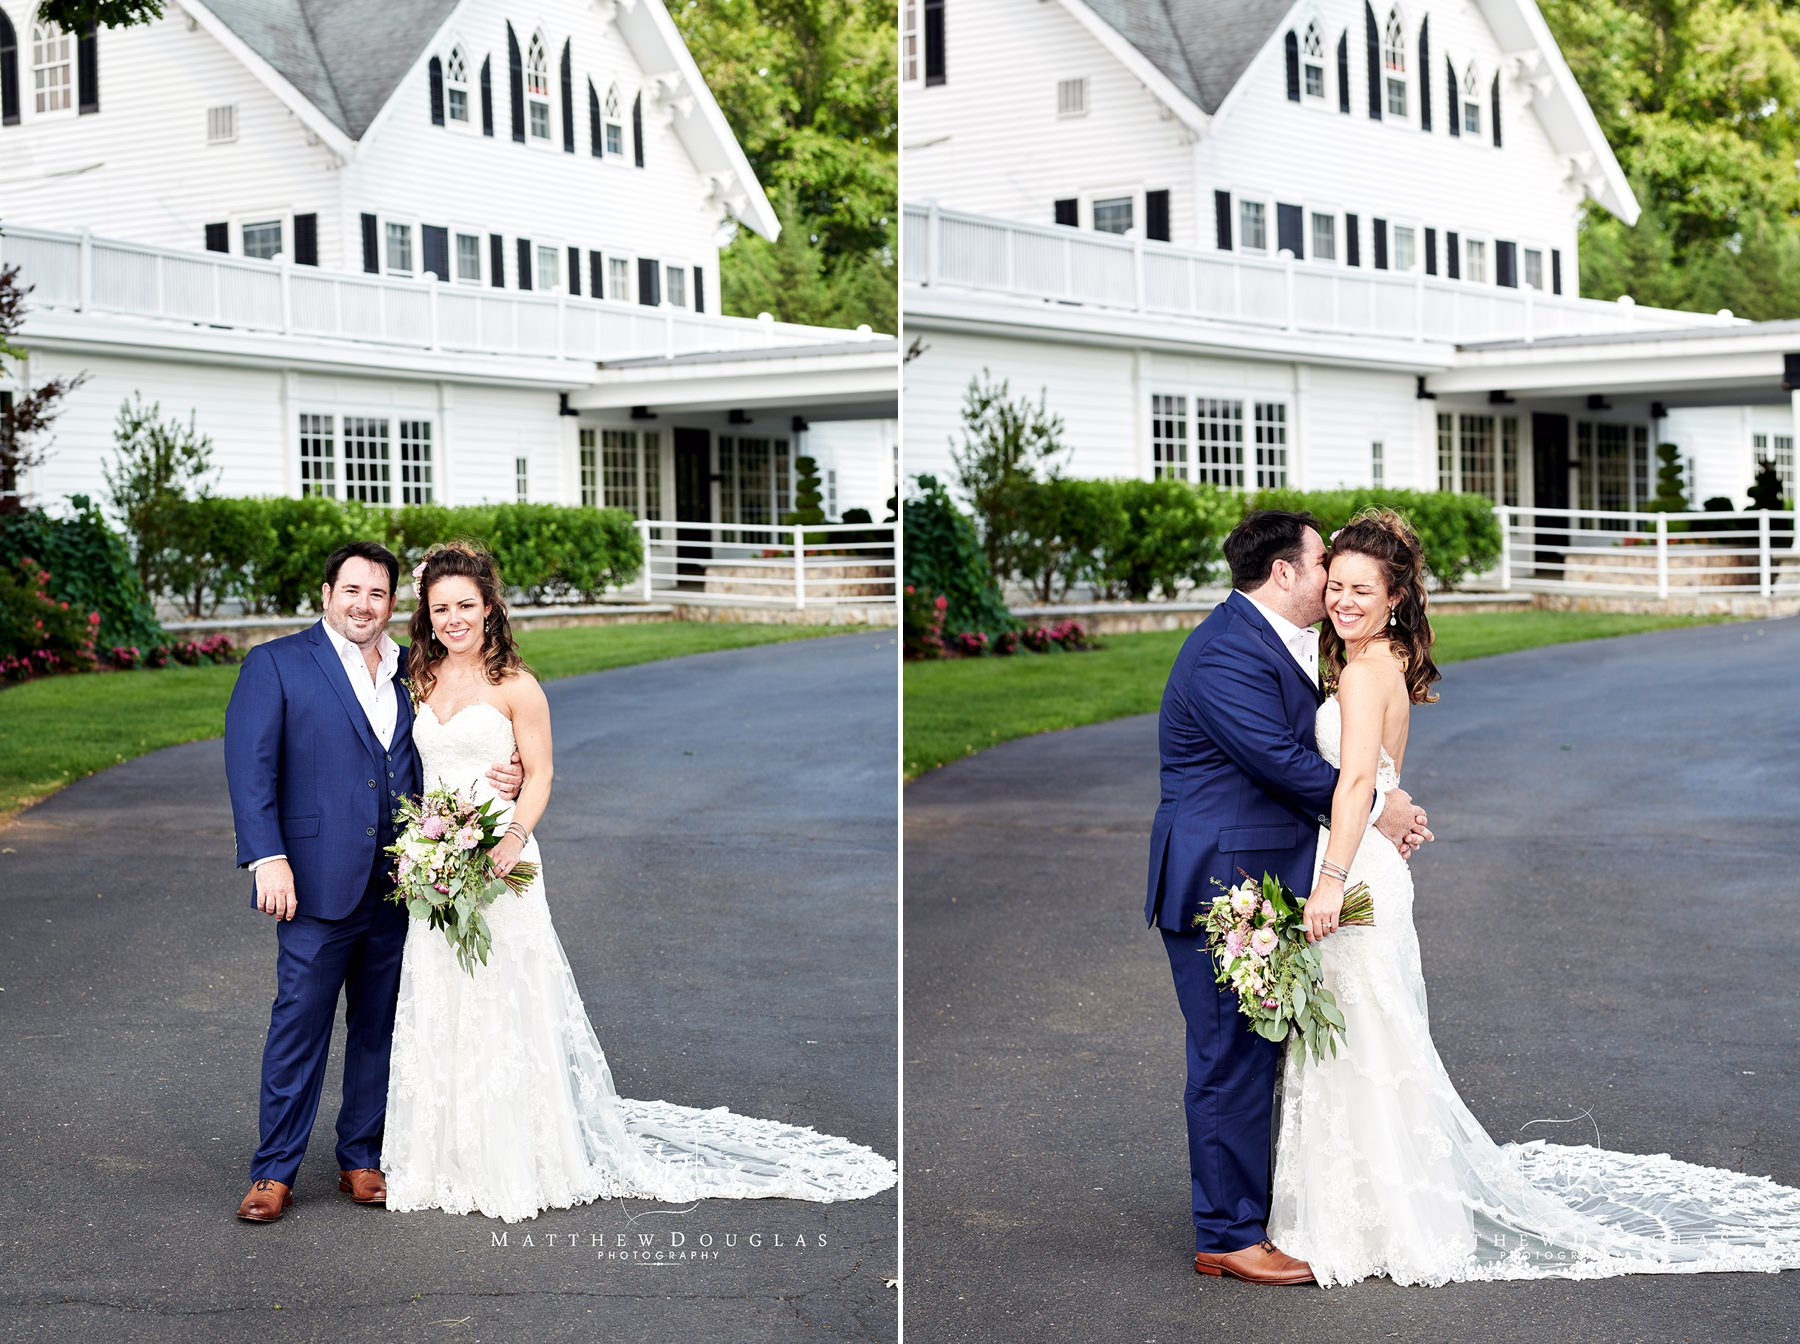 similing couple at their ryland inn wedding